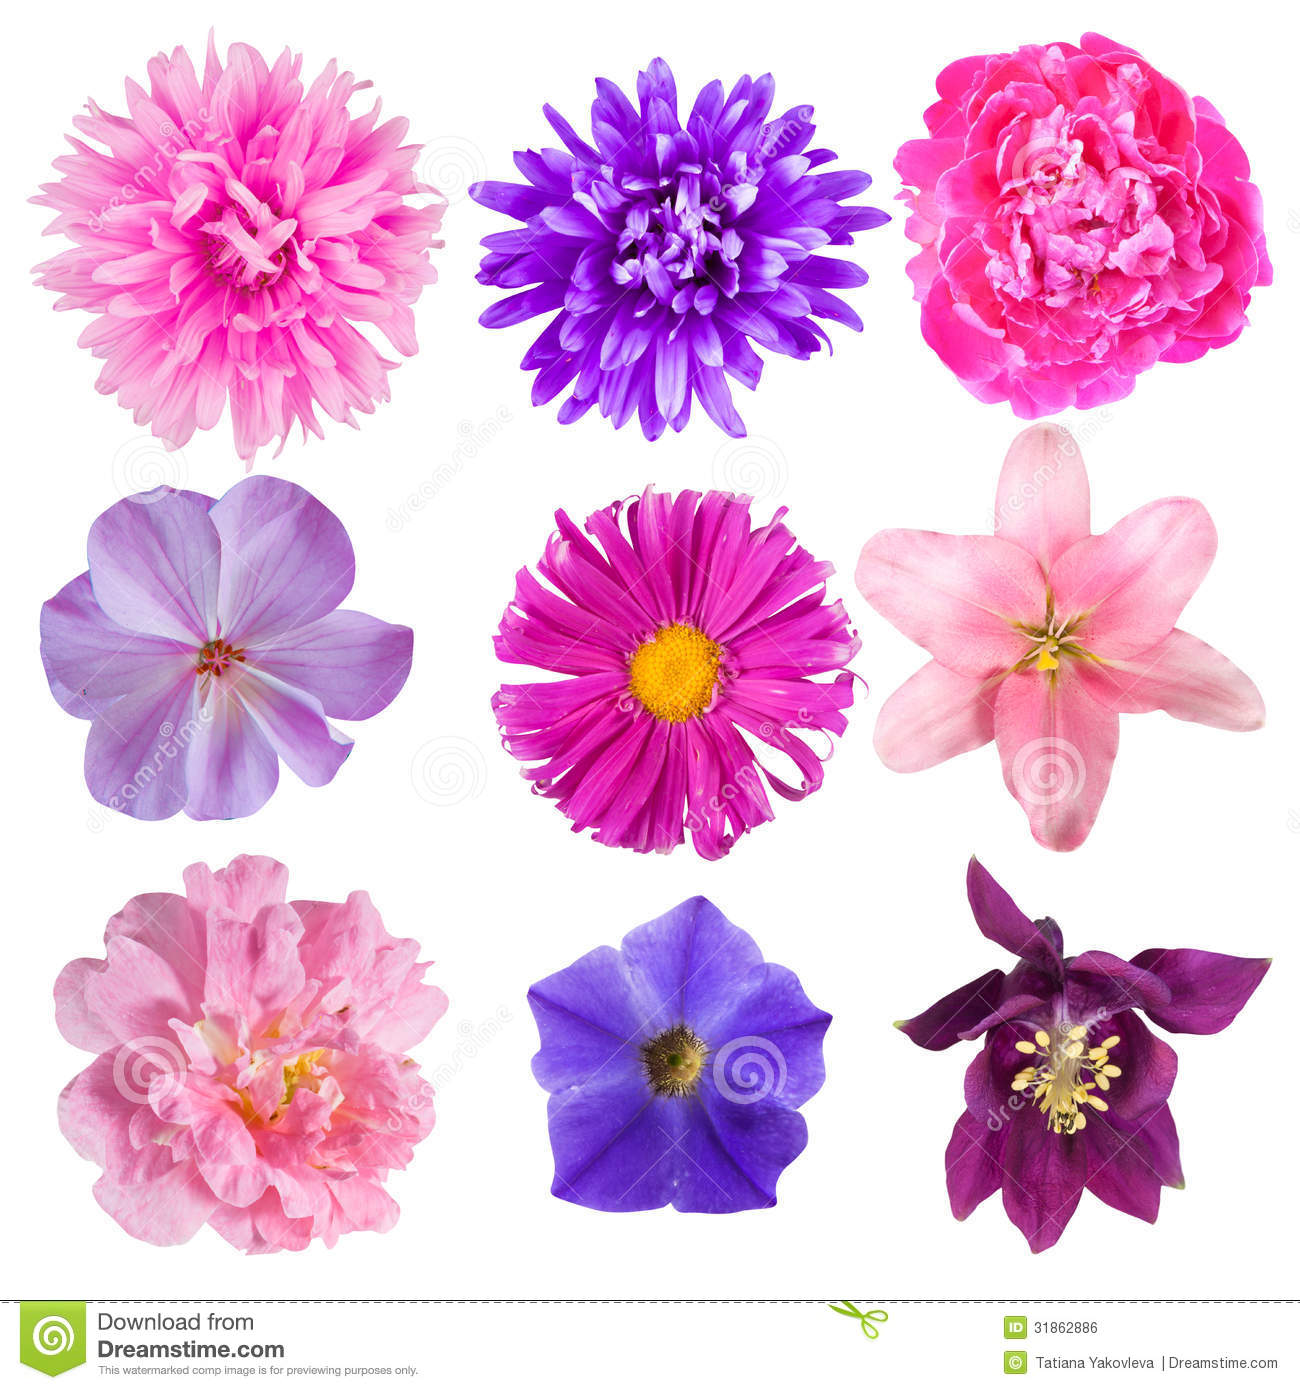 Flowers royalty free stock image image 31862886 for What makes flowers different colors